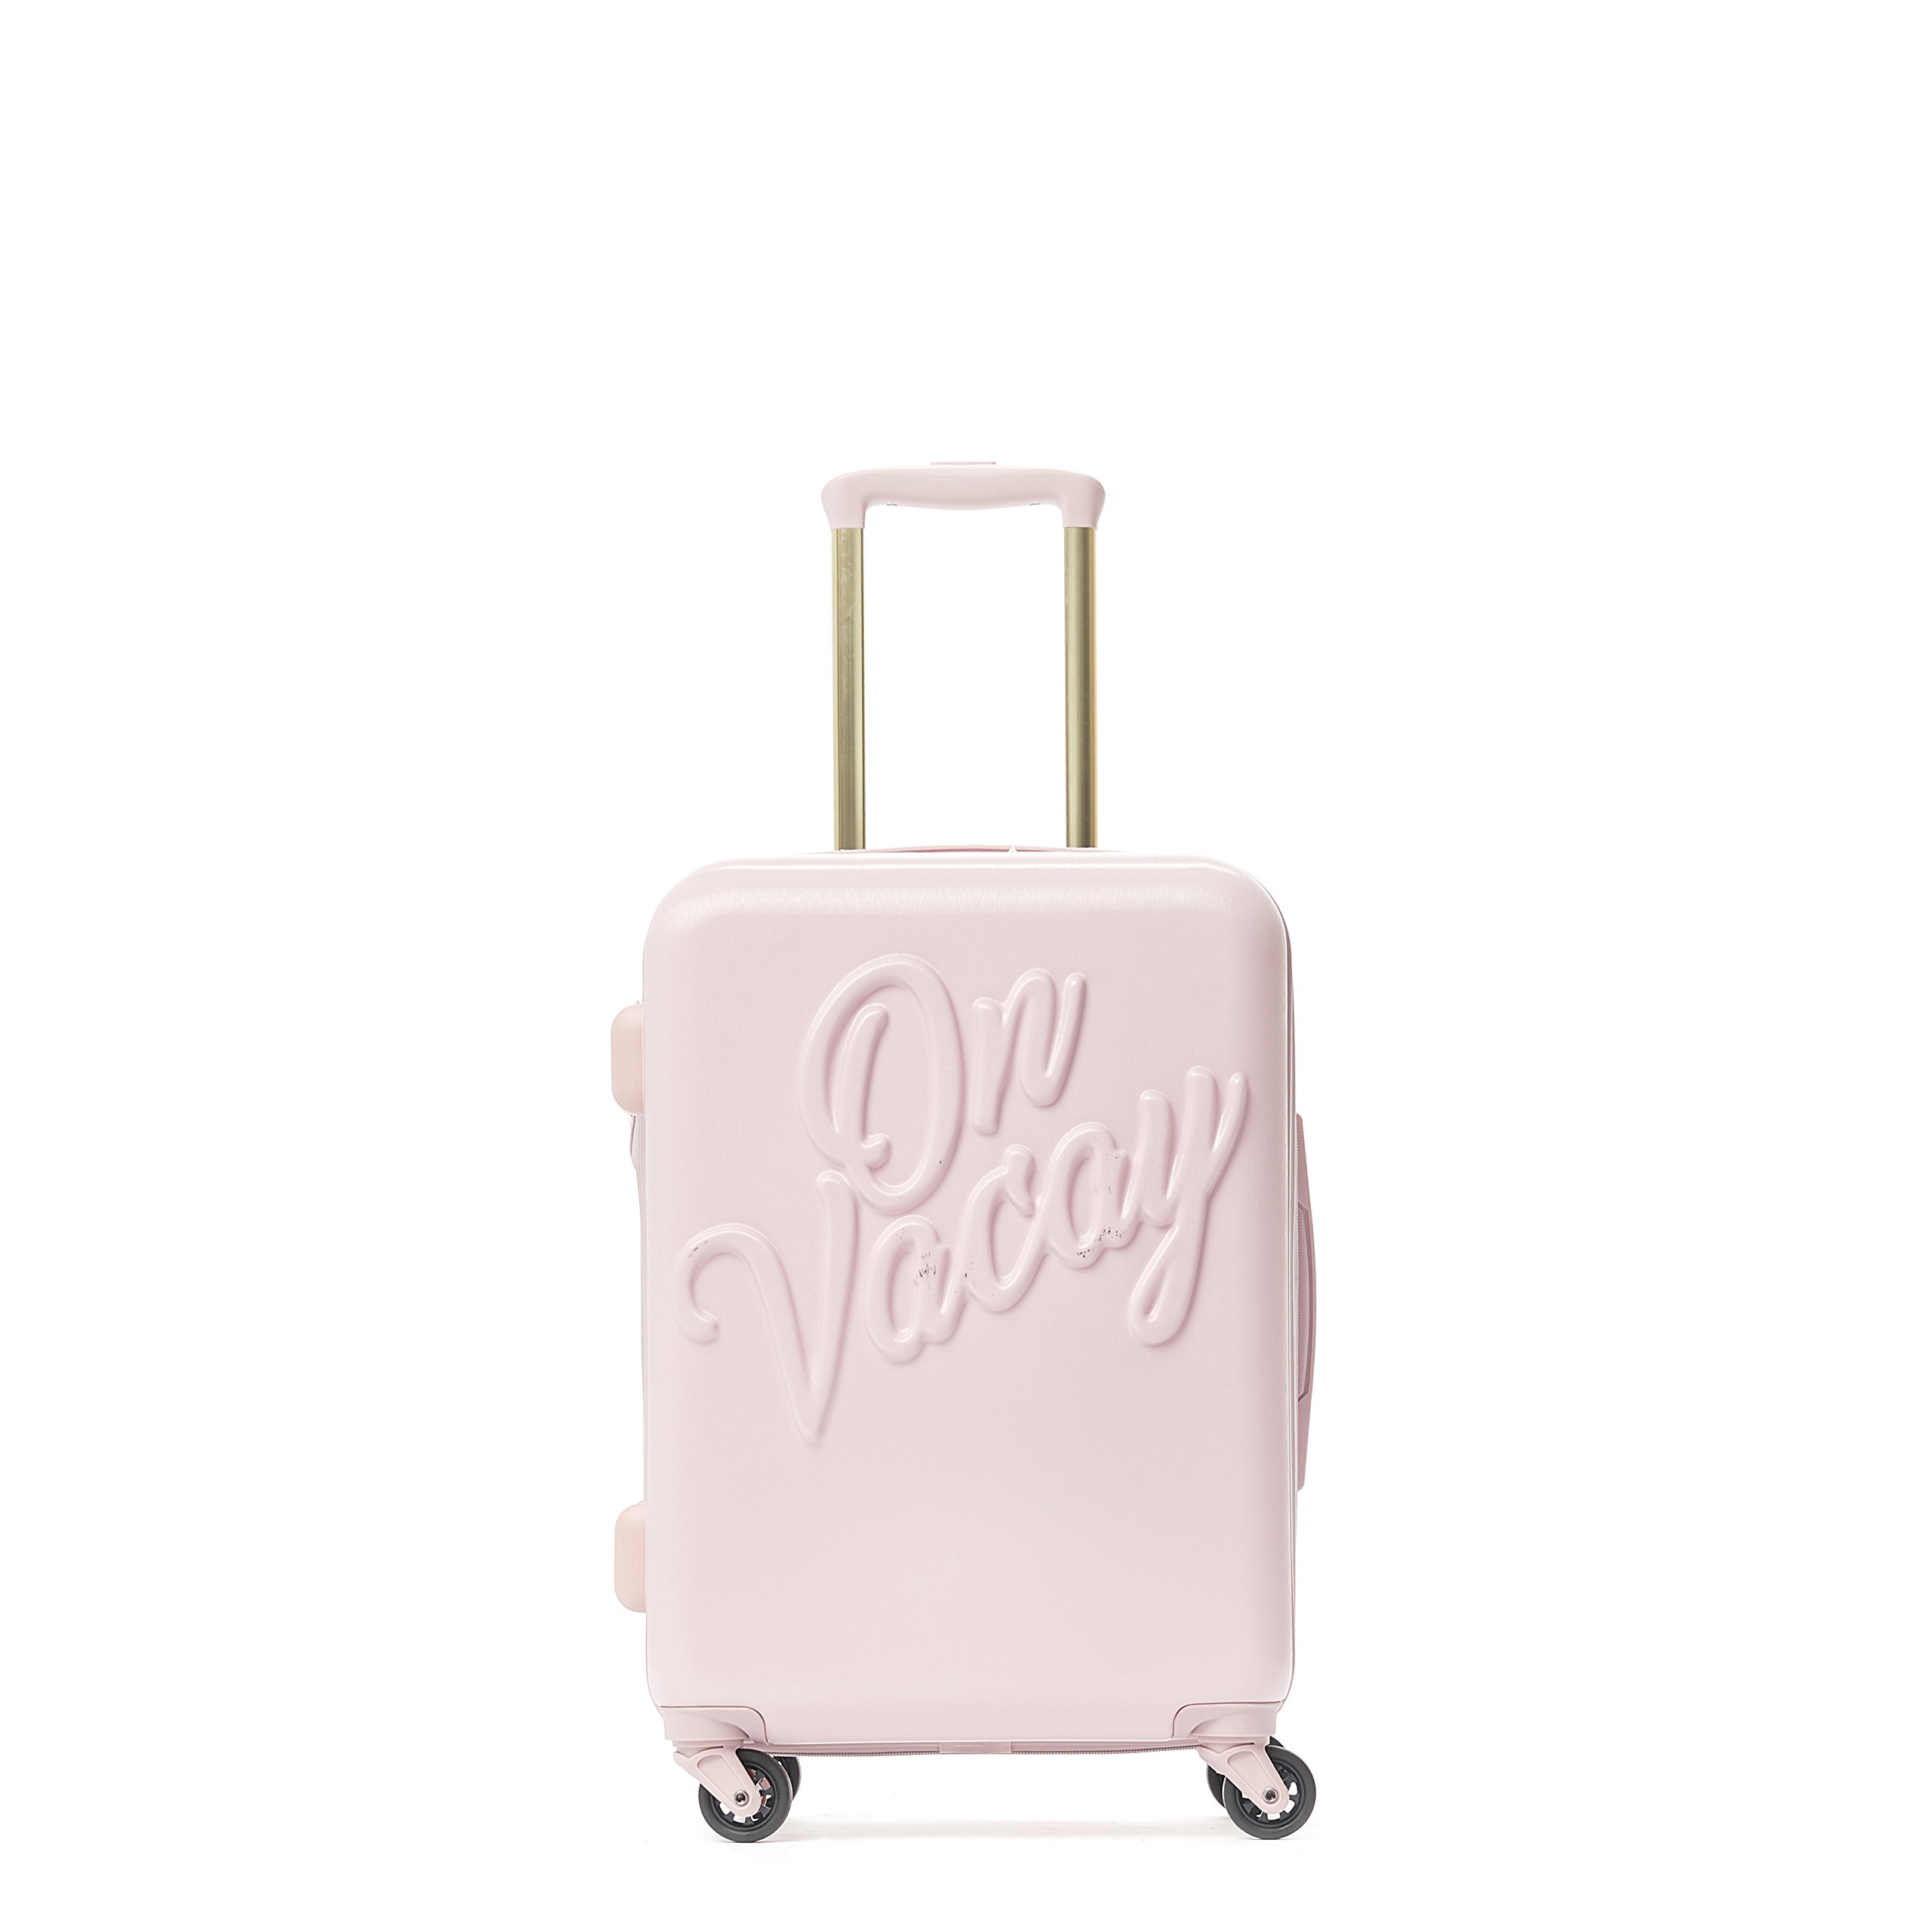 Macbeth On Vacay 21in Rolling Luggage Suitcase, Pink